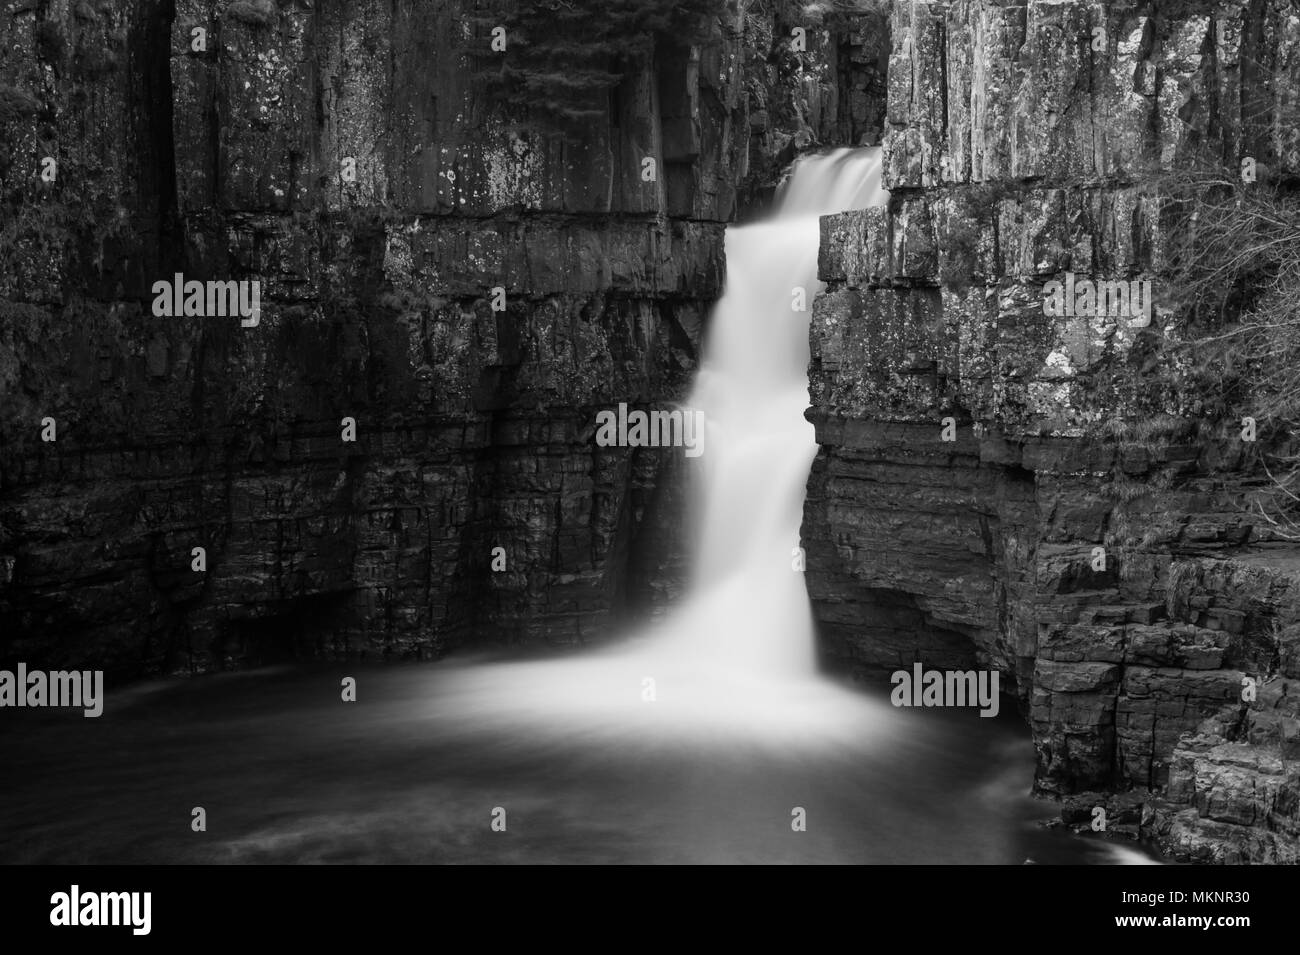 A long exposure image of High Force Waterfall in Teesdale, North Pennines AONB - Stock Image